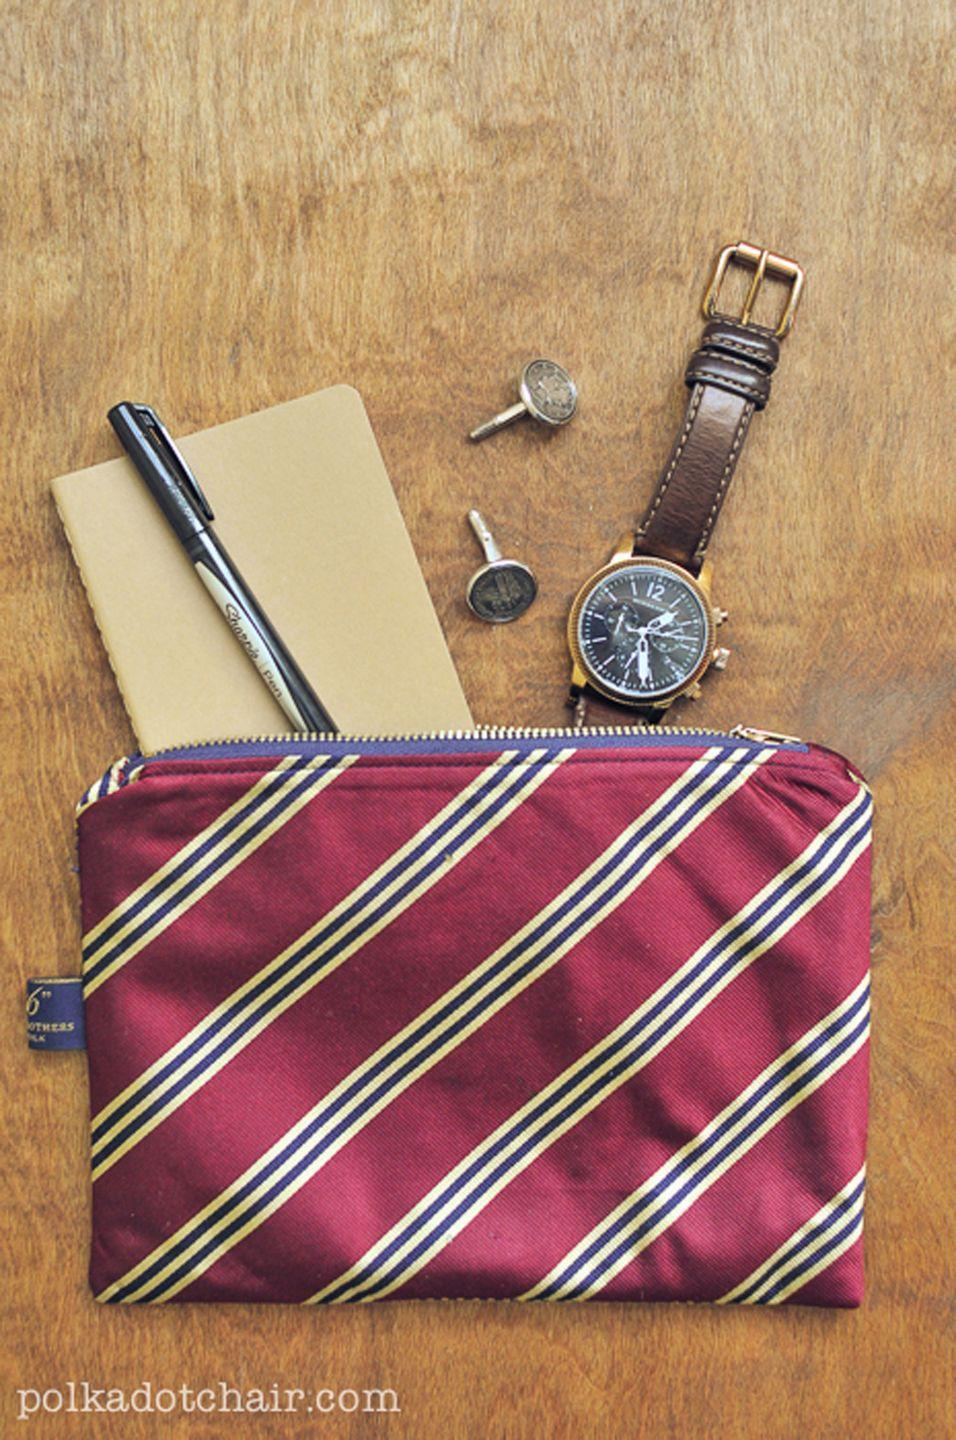 """<p>Transform a couple of Dad's old ties into a pouch that can hold all of his odds and ends. It's also nicely sized to act as a toiletry case if he frequently travels. </p><p><strong>Get the tutorial at <a href=""""https://www.polkadotchair.com/diy-necktie-zip-pouch/"""" rel=""""nofollow noopener"""" target=""""_blank"""" data-ylk=""""slk:Polkadot Chair"""" class=""""link rapid-noclick-resp"""">Polkadot Chair</a>.</strong></p><p><strong><a class=""""link rapid-noclick-resp"""" href=""""https://www.amazon.com/Coats-Thread-Zippers-F2107-013-All-Purpose/dp/B003W0S58Y?tag=syn-yahoo-20&ascsubtag=%5Bartid%7C10050.g.1171%5Bsrc%7Cyahoo-us"""" rel=""""nofollow noopener"""" target=""""_blank"""" data-ylk=""""slk:SHOP ZIPPERS"""">SHOP ZIPPERS</a></strong></p>"""